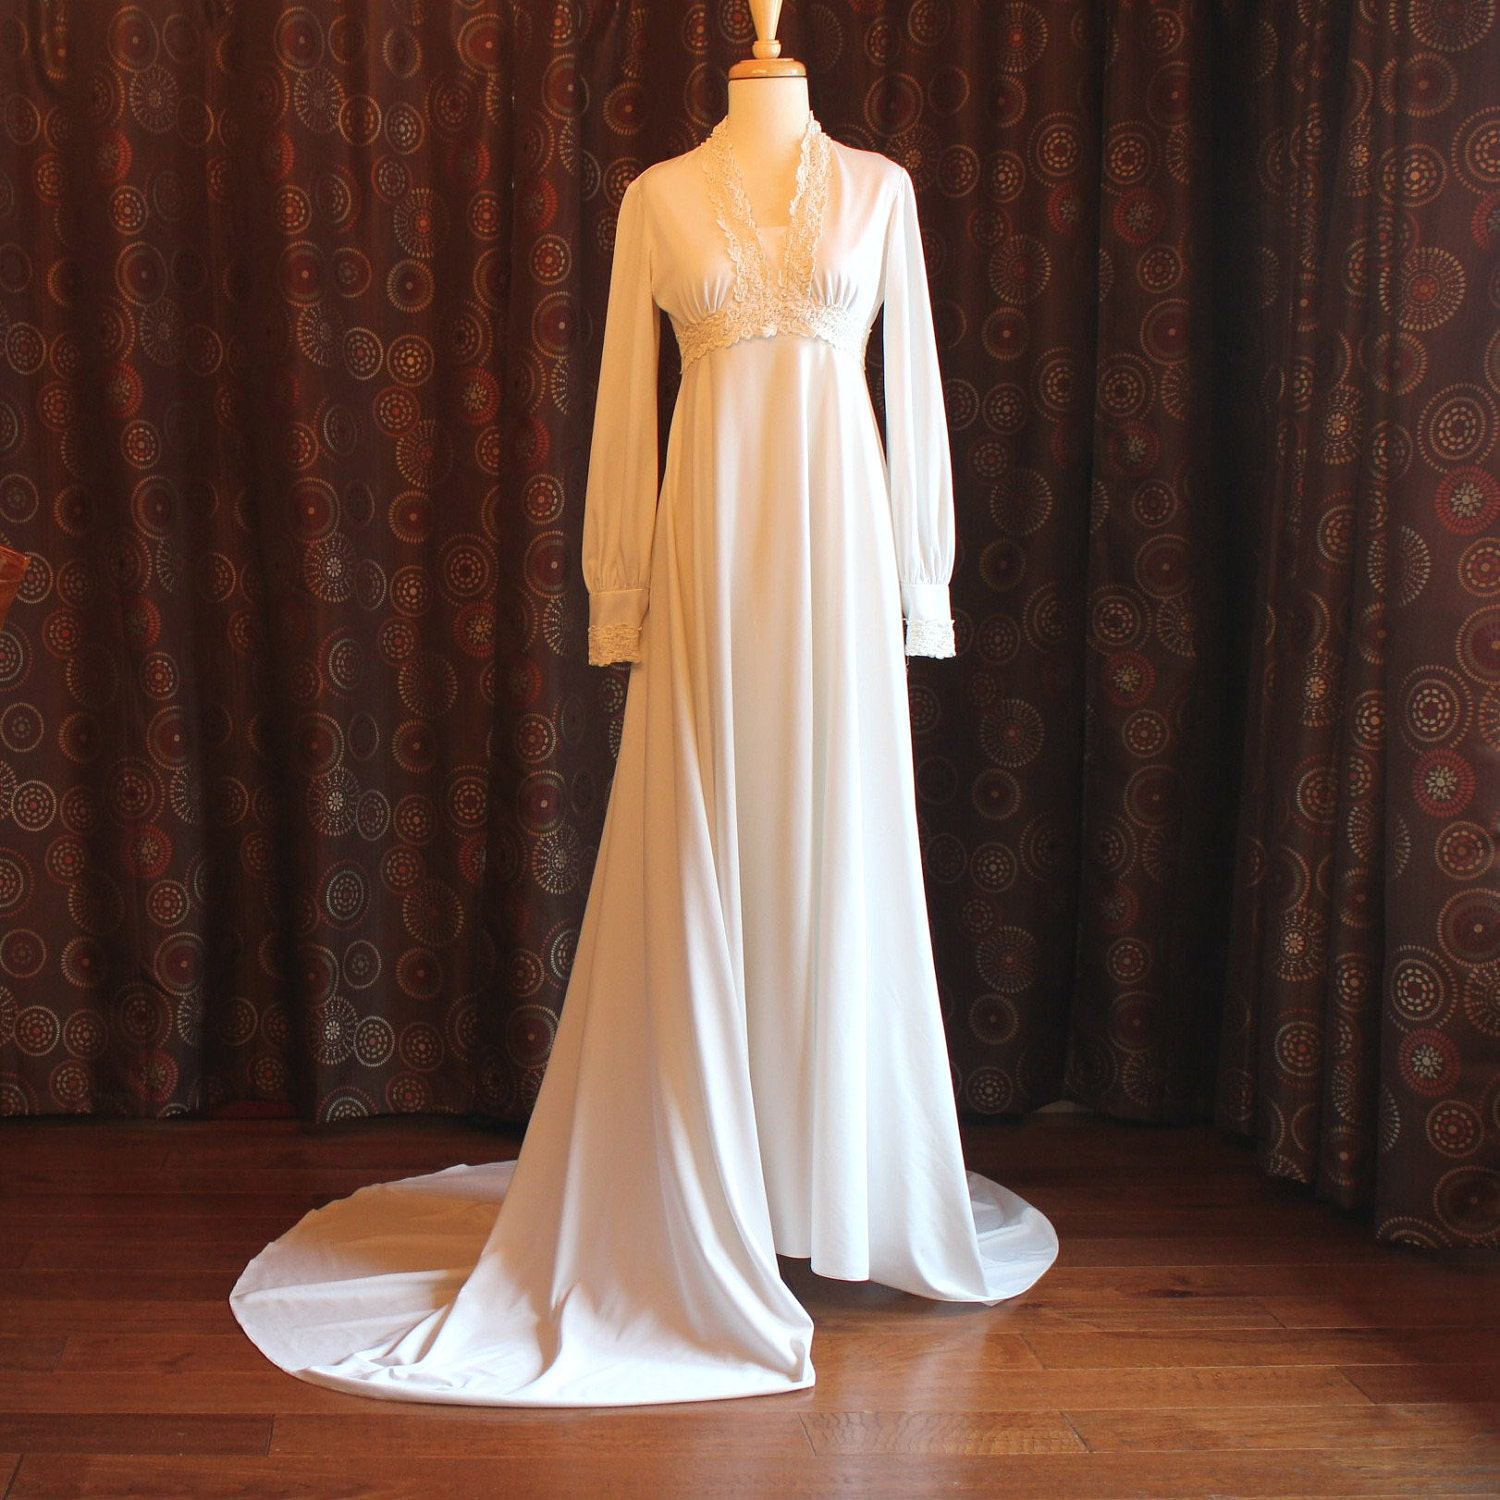 70's Empire Waist Jersey Knit Wedding Gown With Train